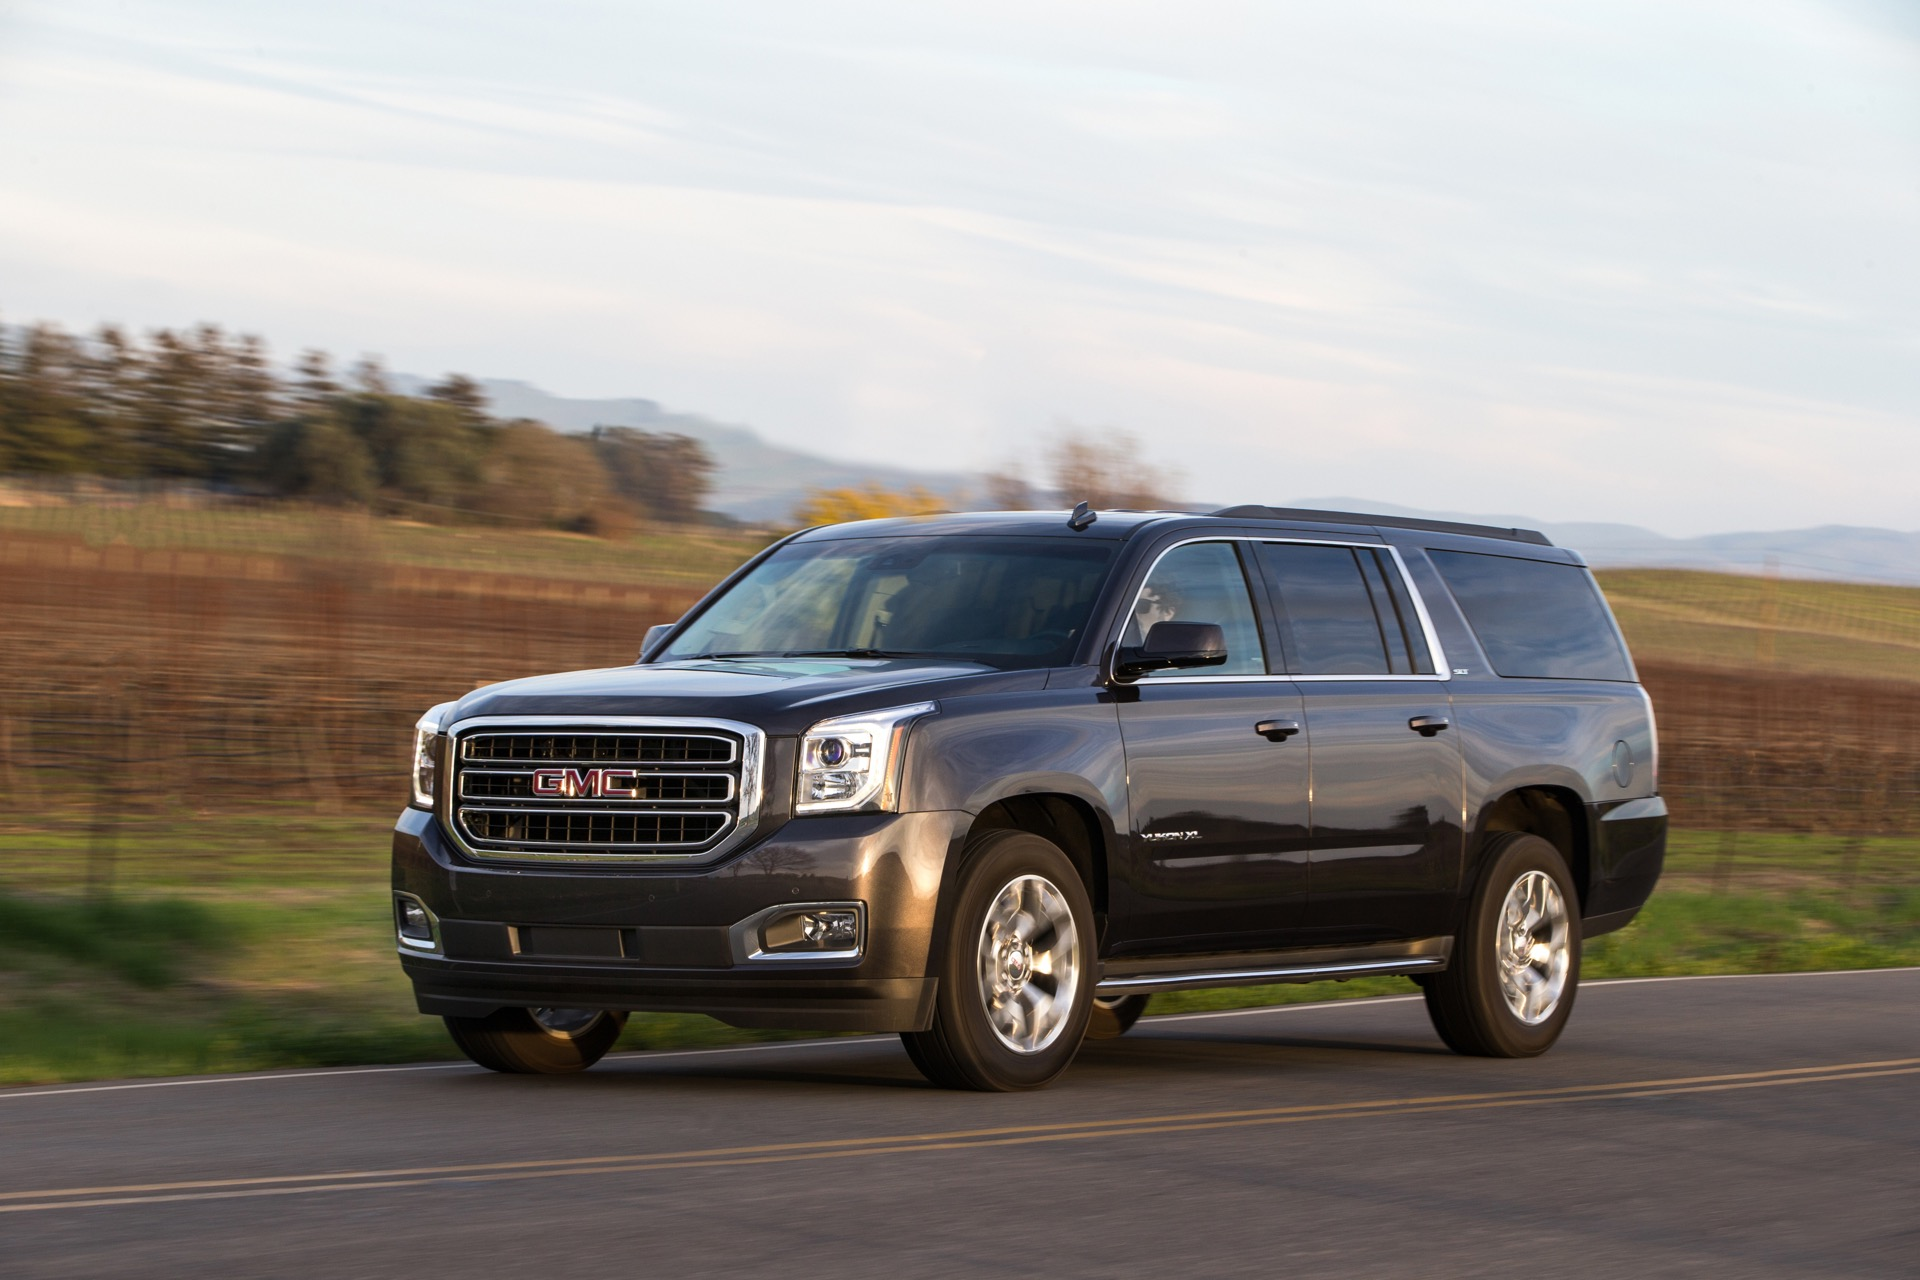 2016 gmc yukon quality review the car connection. Black Bedroom Furniture Sets. Home Design Ideas